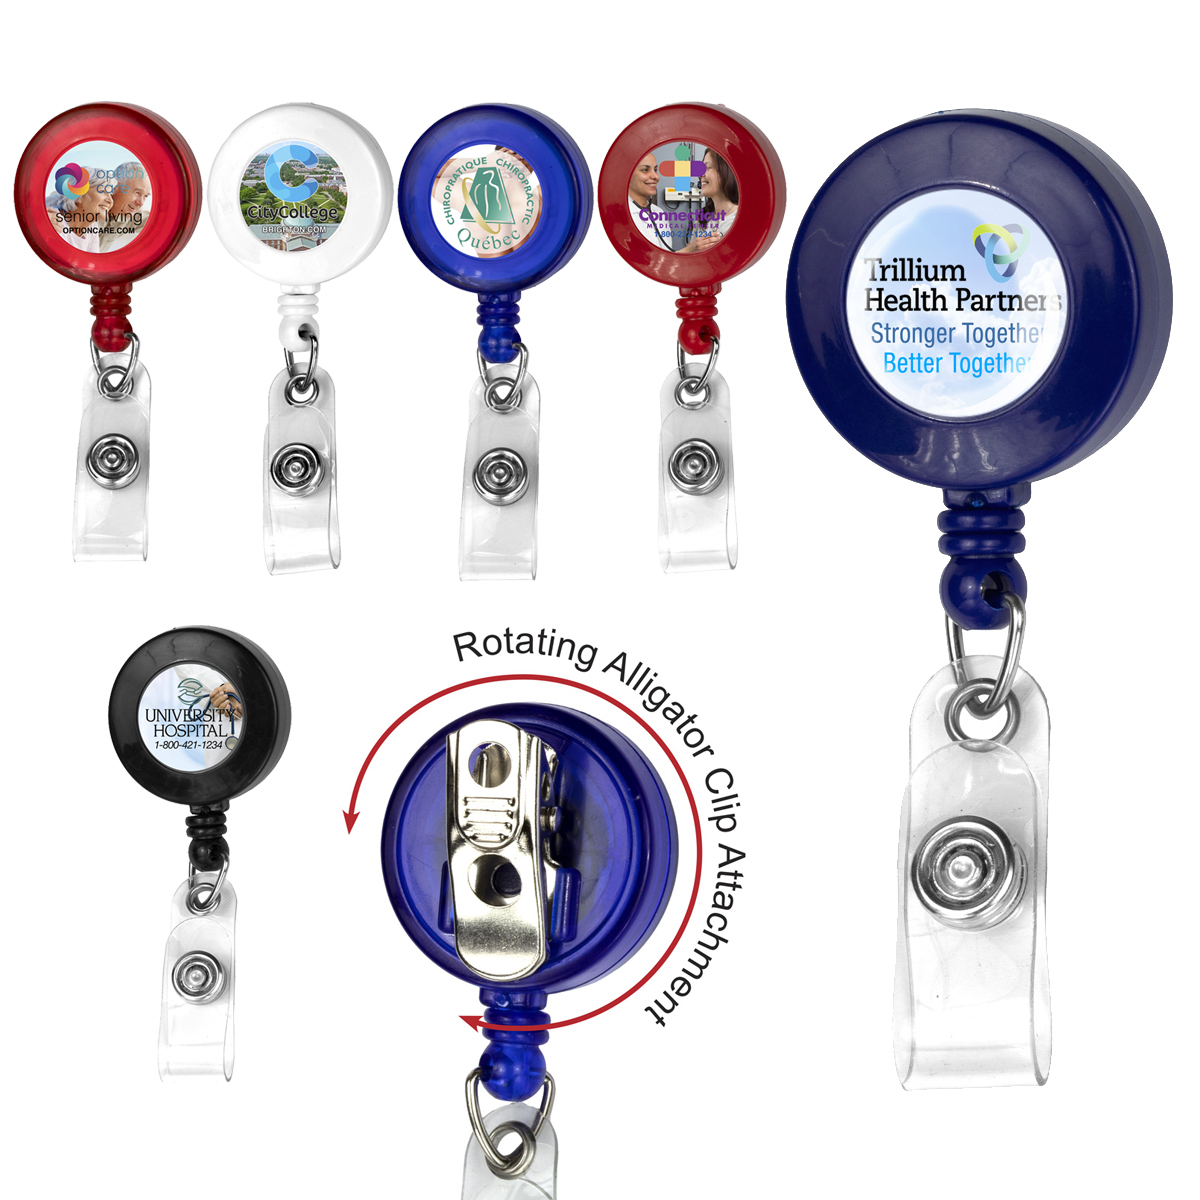 30 Cord Round Retractable Badge Reel | Everything Branded USA